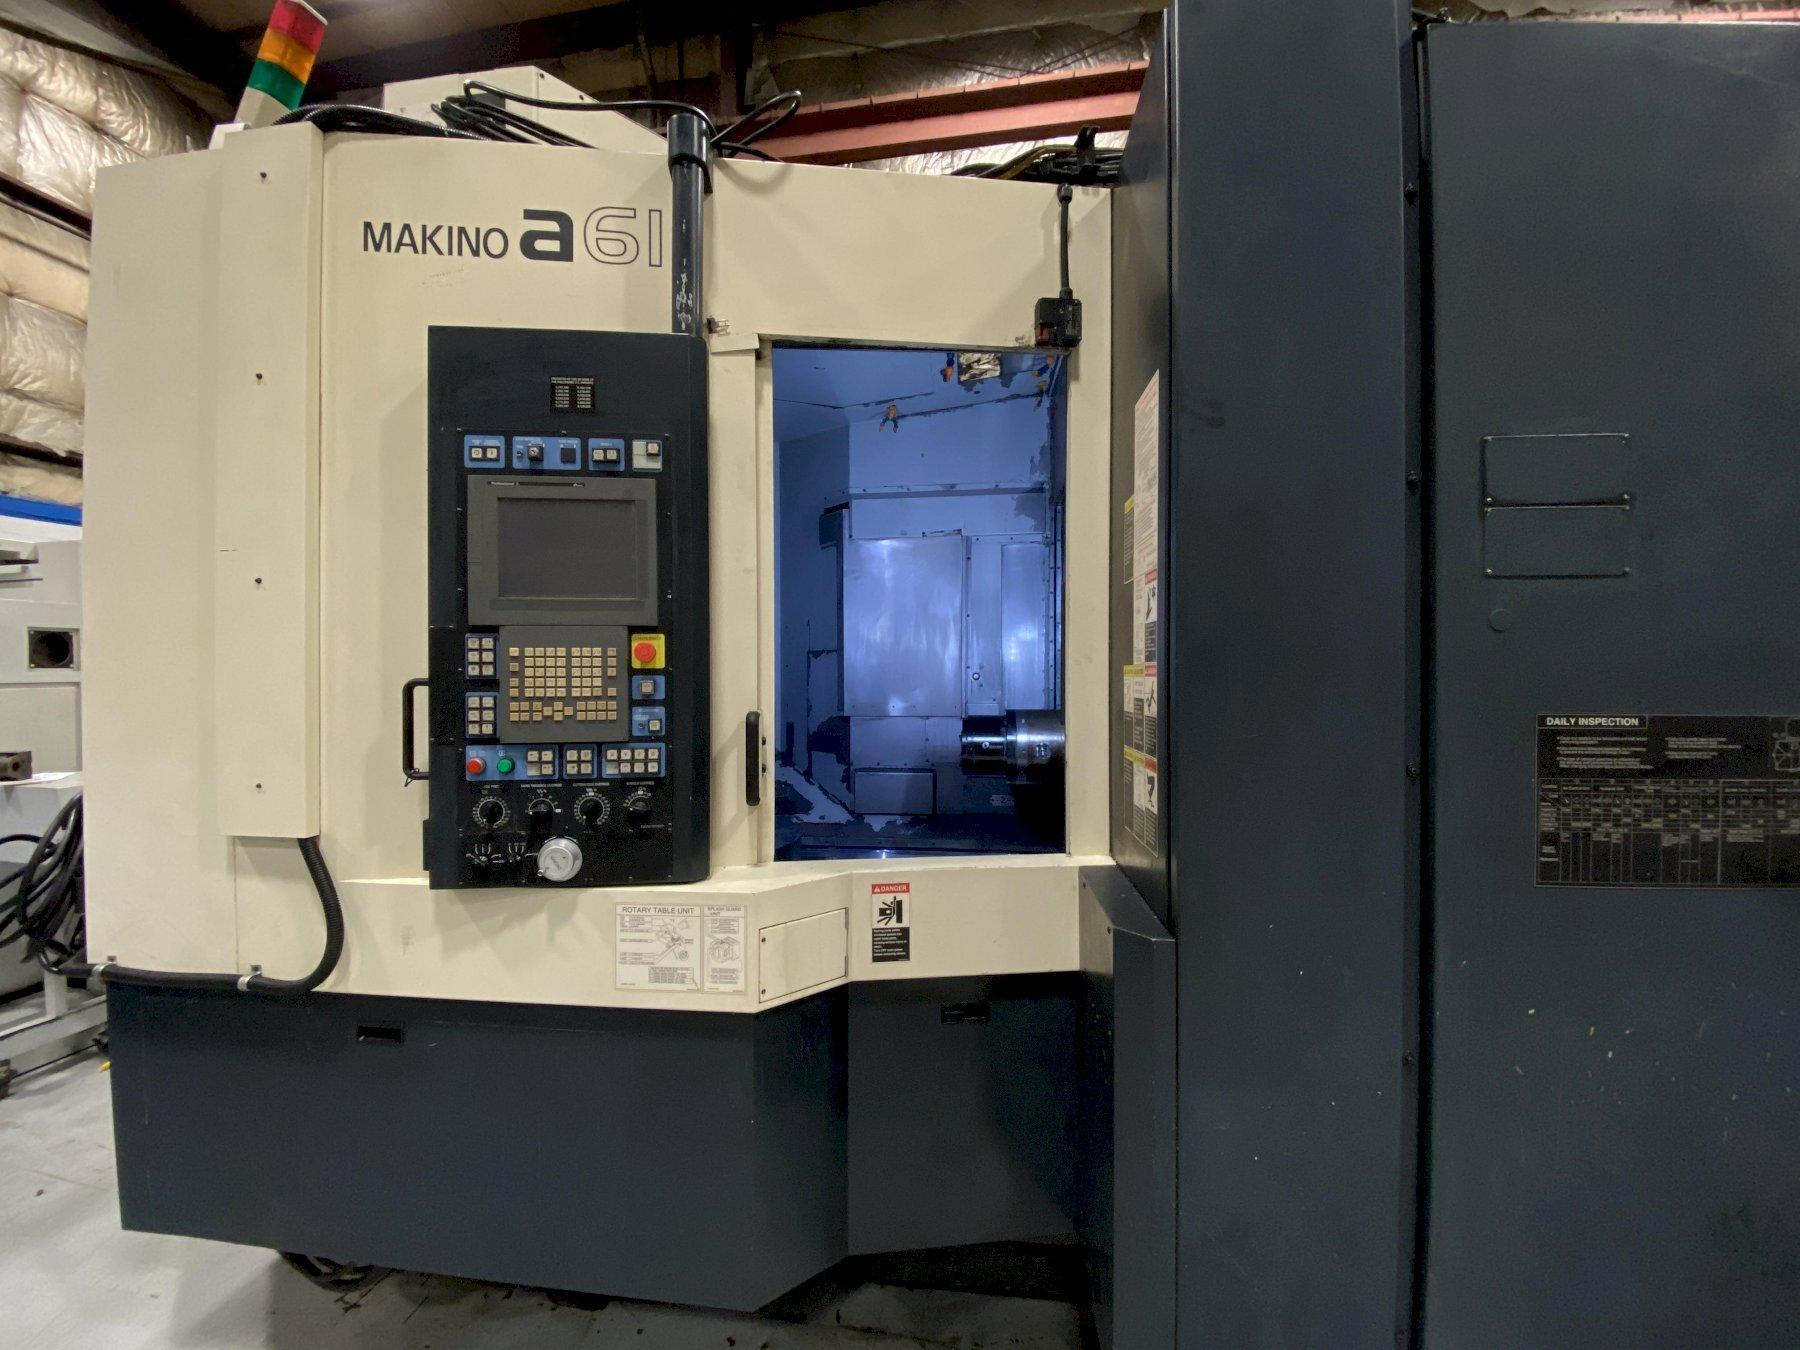 2008 Makino A61 - CNC Horizontal Machining Center